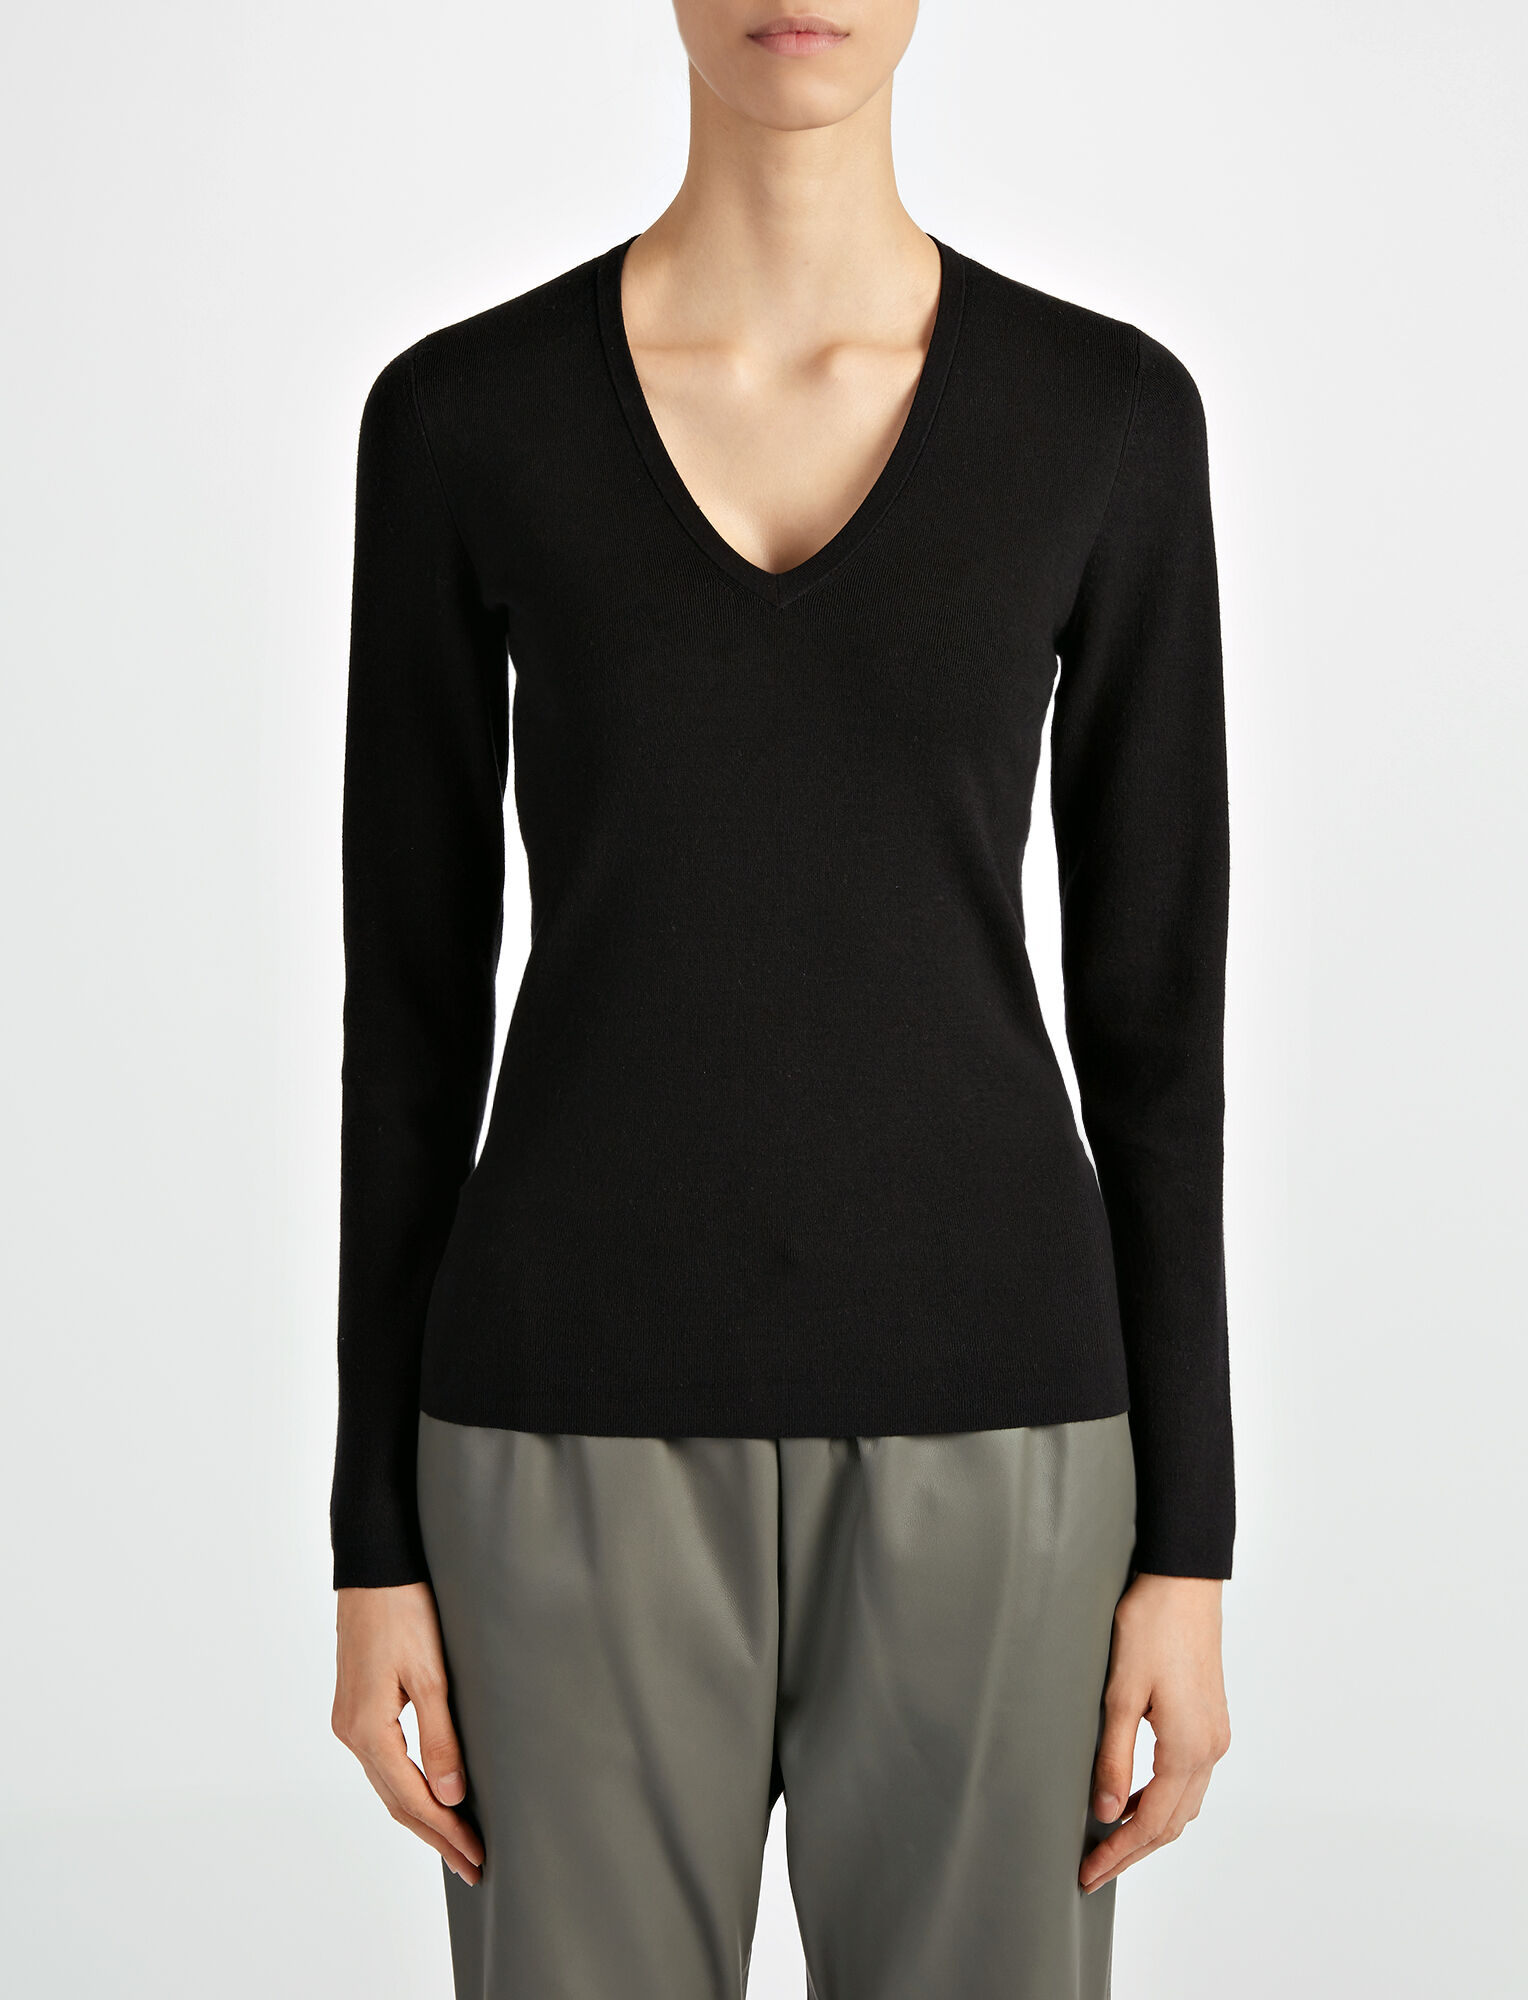 Joseph, Silk Stretch V Neck Top, in BLACK